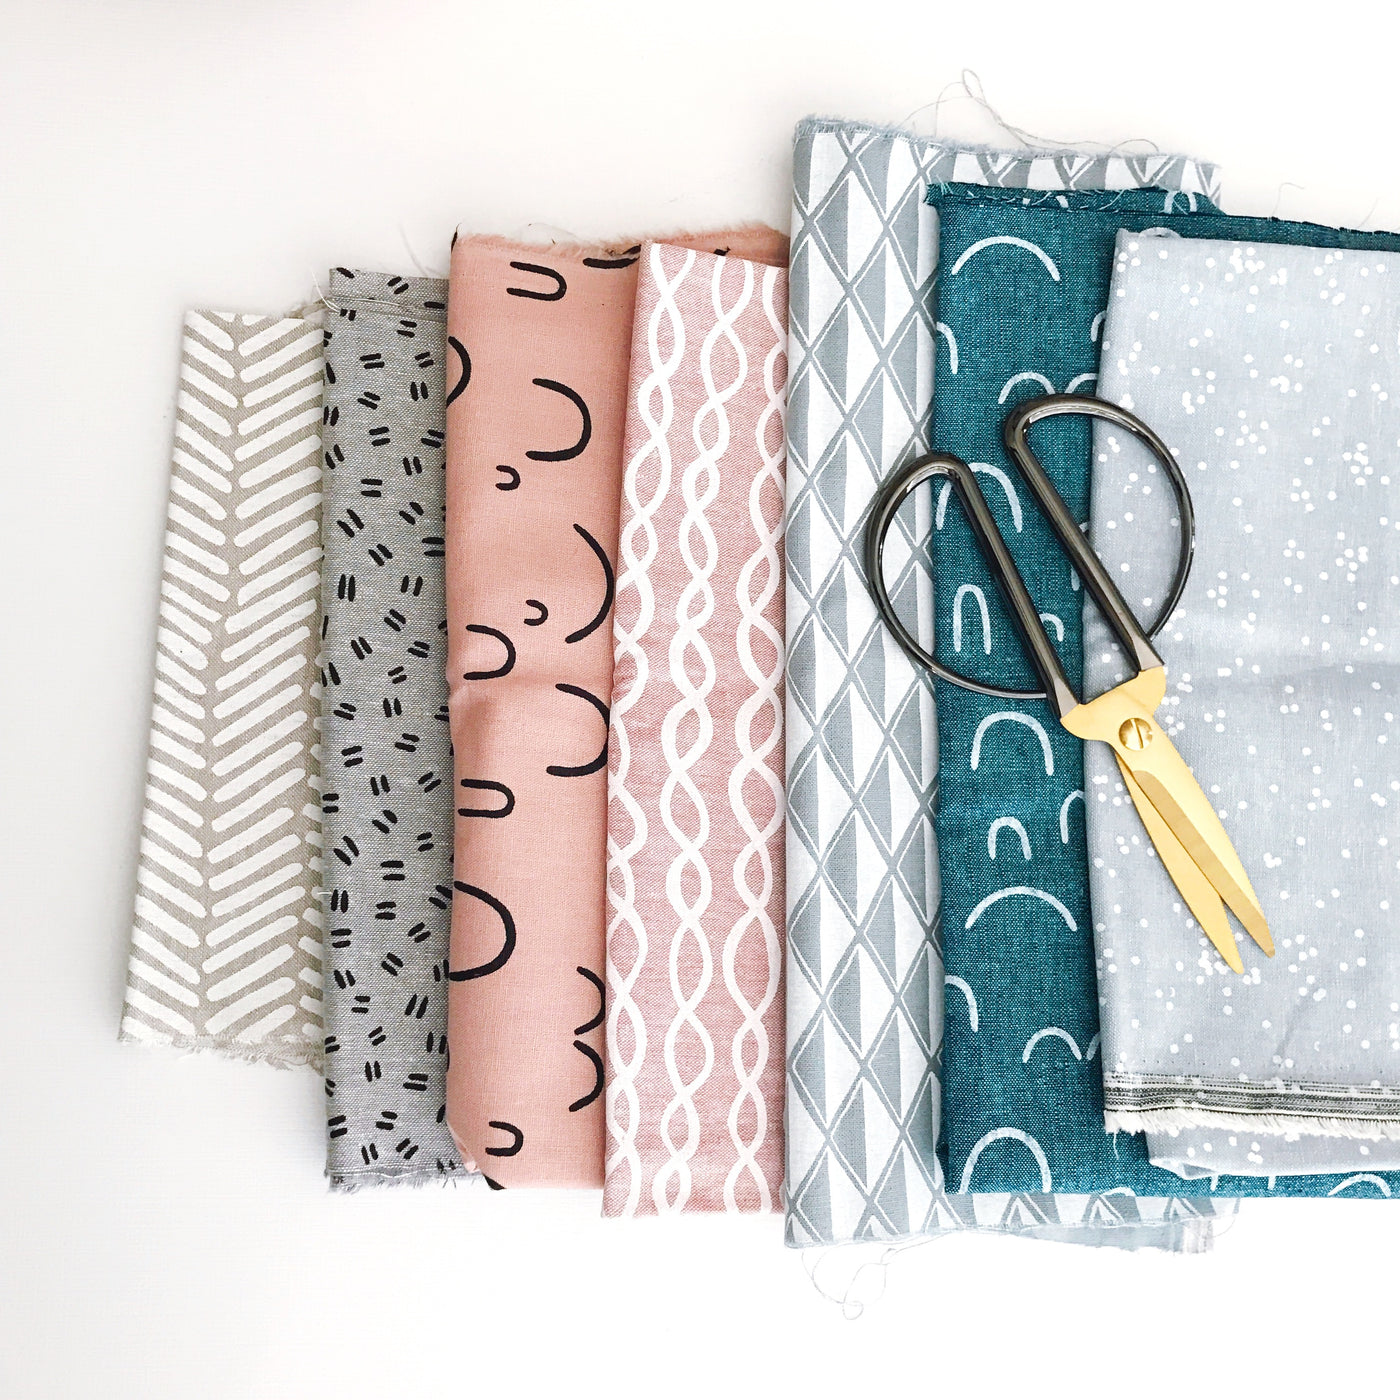 Designer Spotlight: Cloud 9 Fabrics